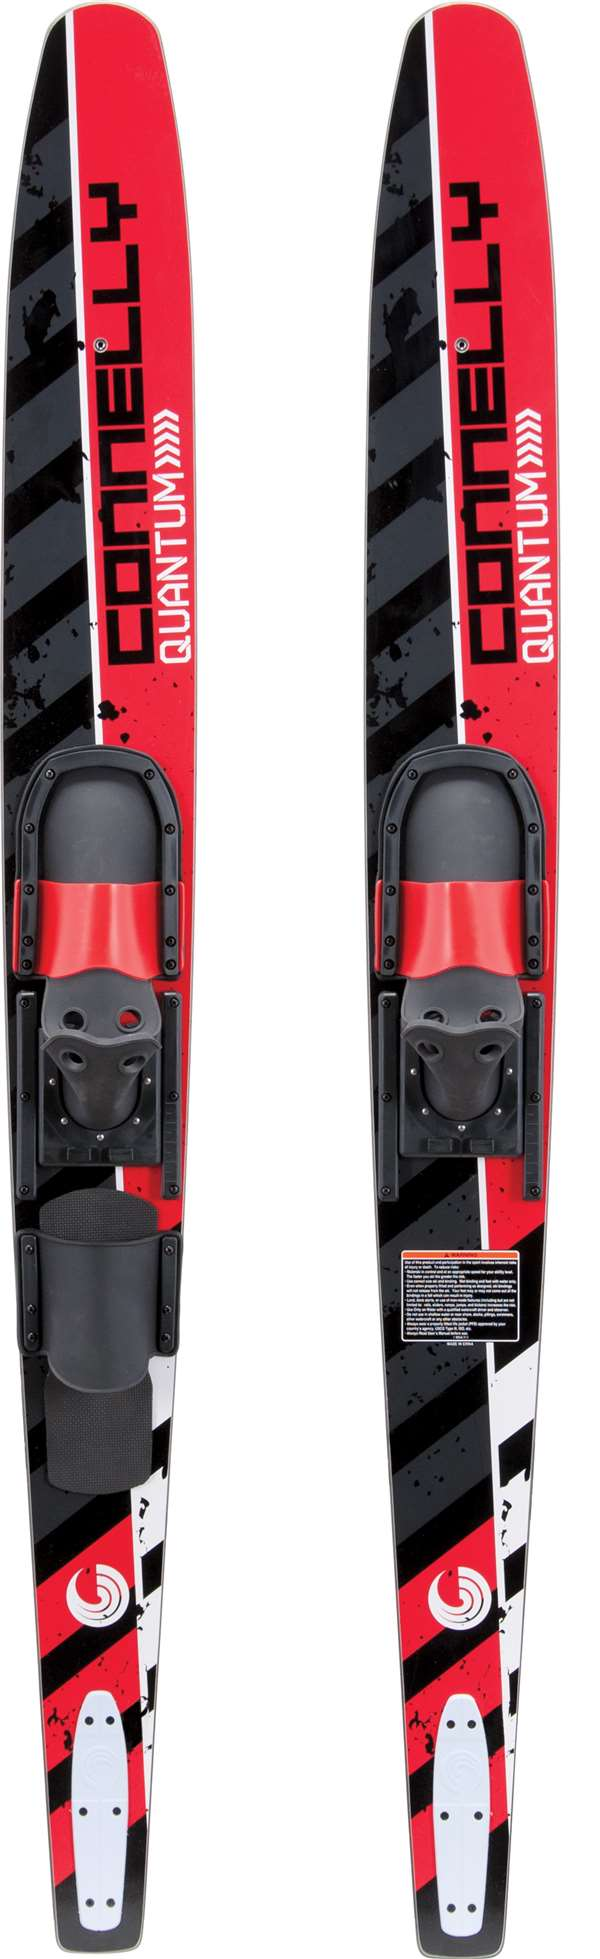 Quantum Slide Adjustable Bindings Connelly Combo Water Skis